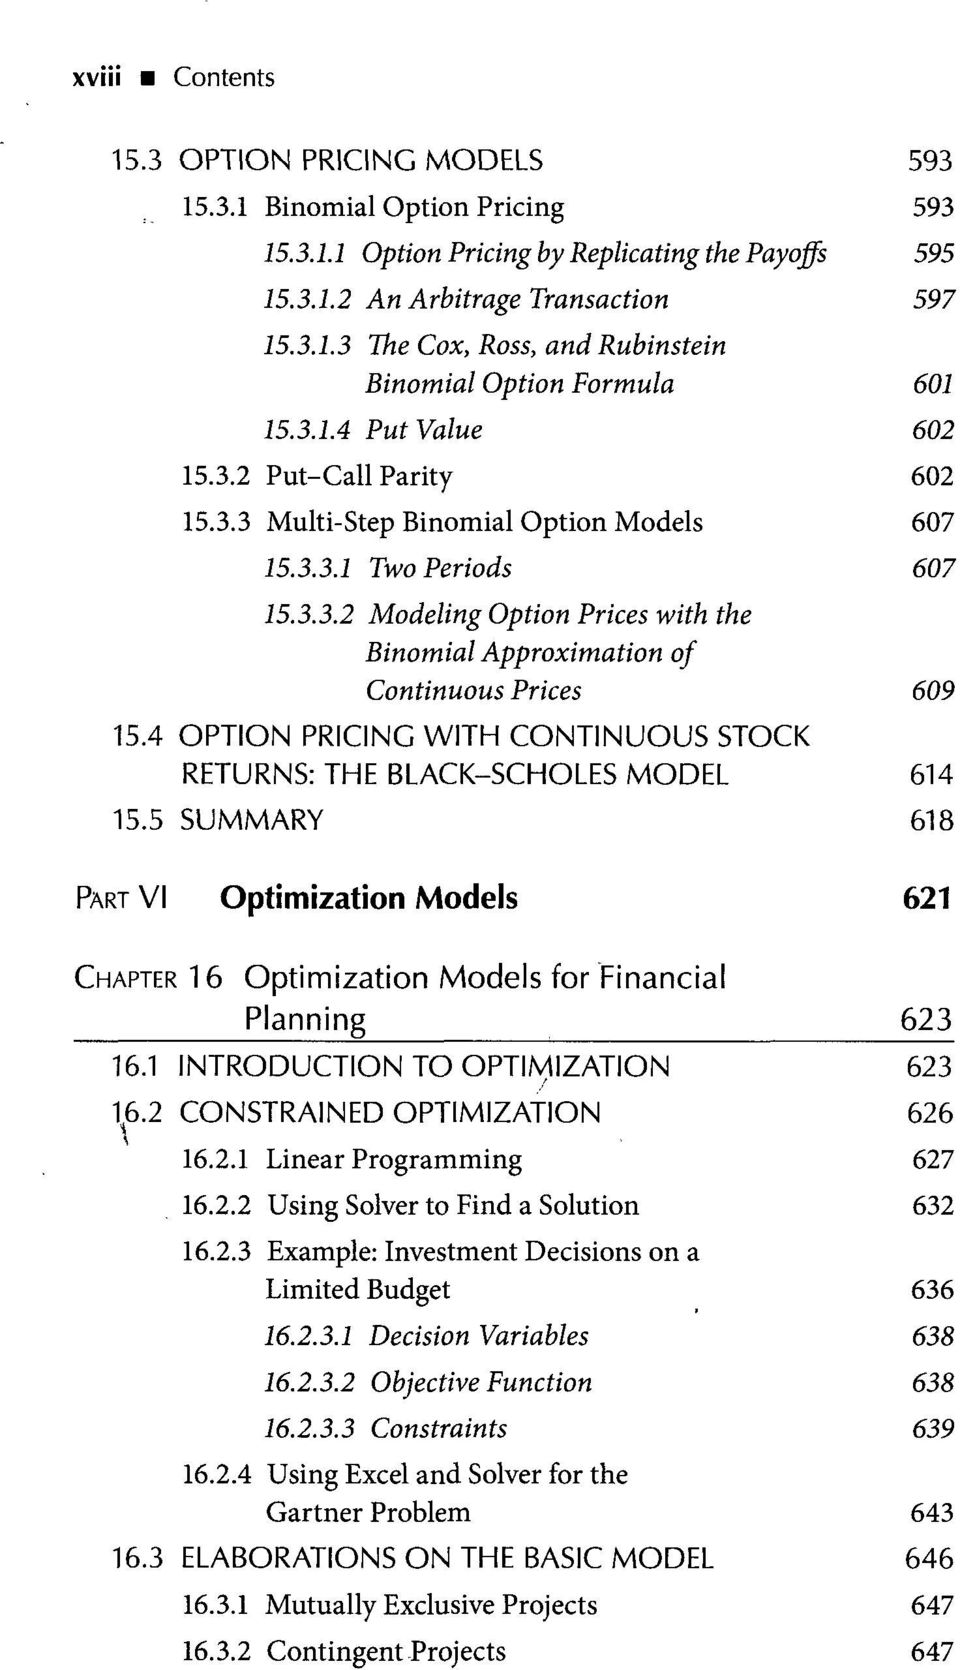 4 OPTION PRICING WITH CONTINUOUS STOCK RETURNS: THE BLACK-SCHOLES MODEL 614 15.5 SUMMARY 618 PART VI Optimization Models 621 CHAPTER 16 Optimization Models for Financial Planning 623 16.